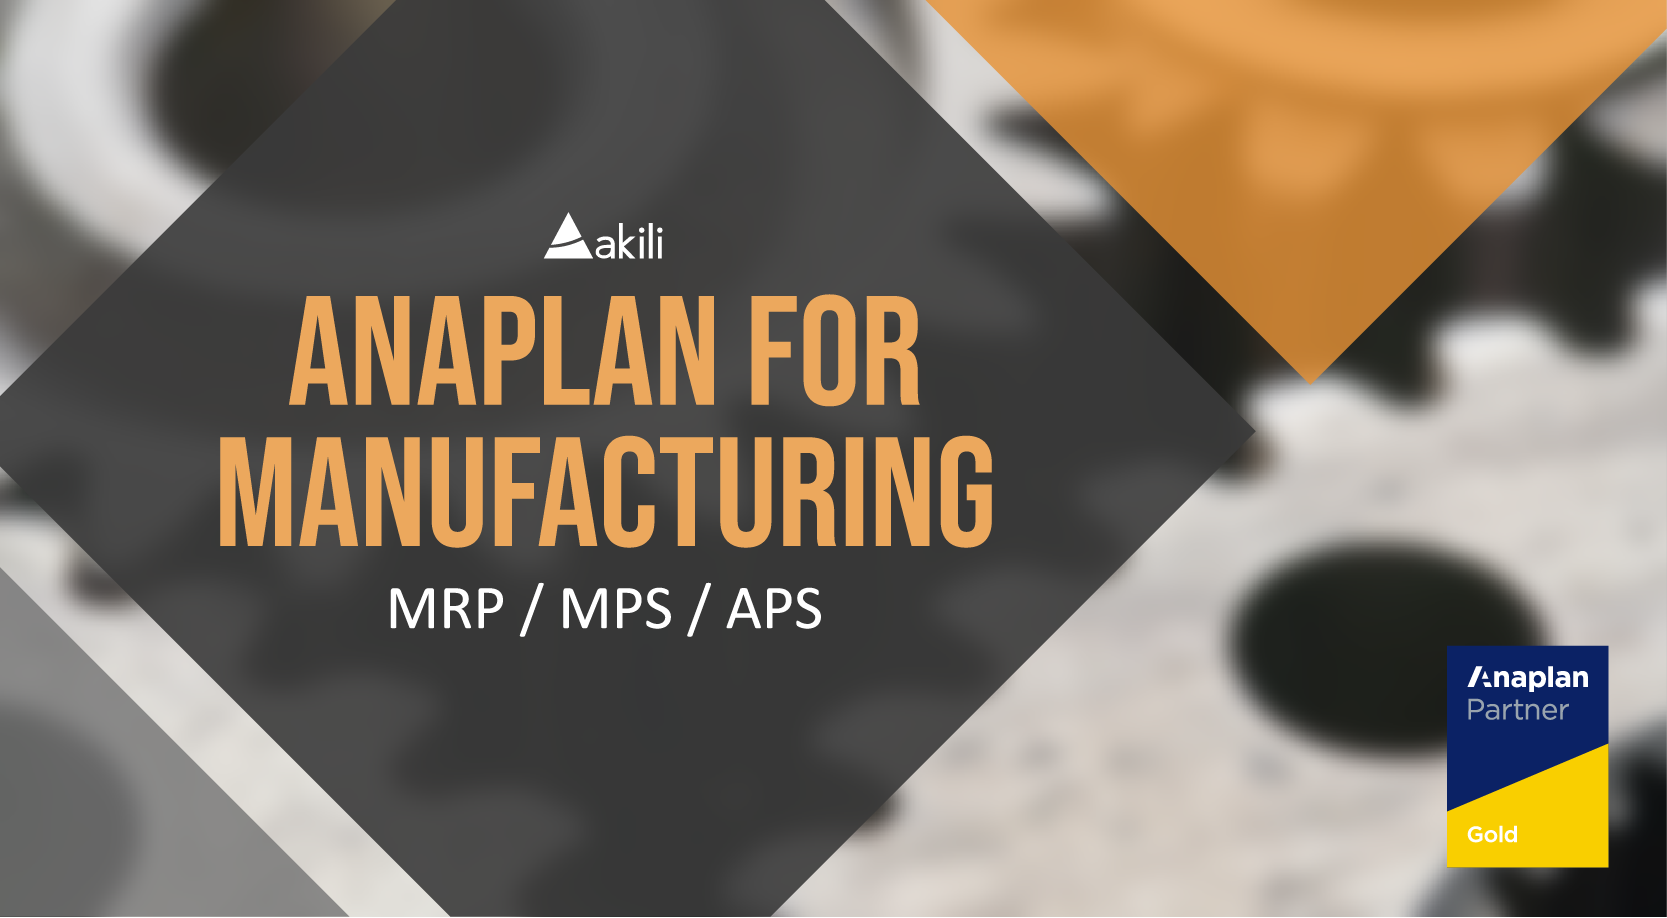 Anaplan for Manufacturing